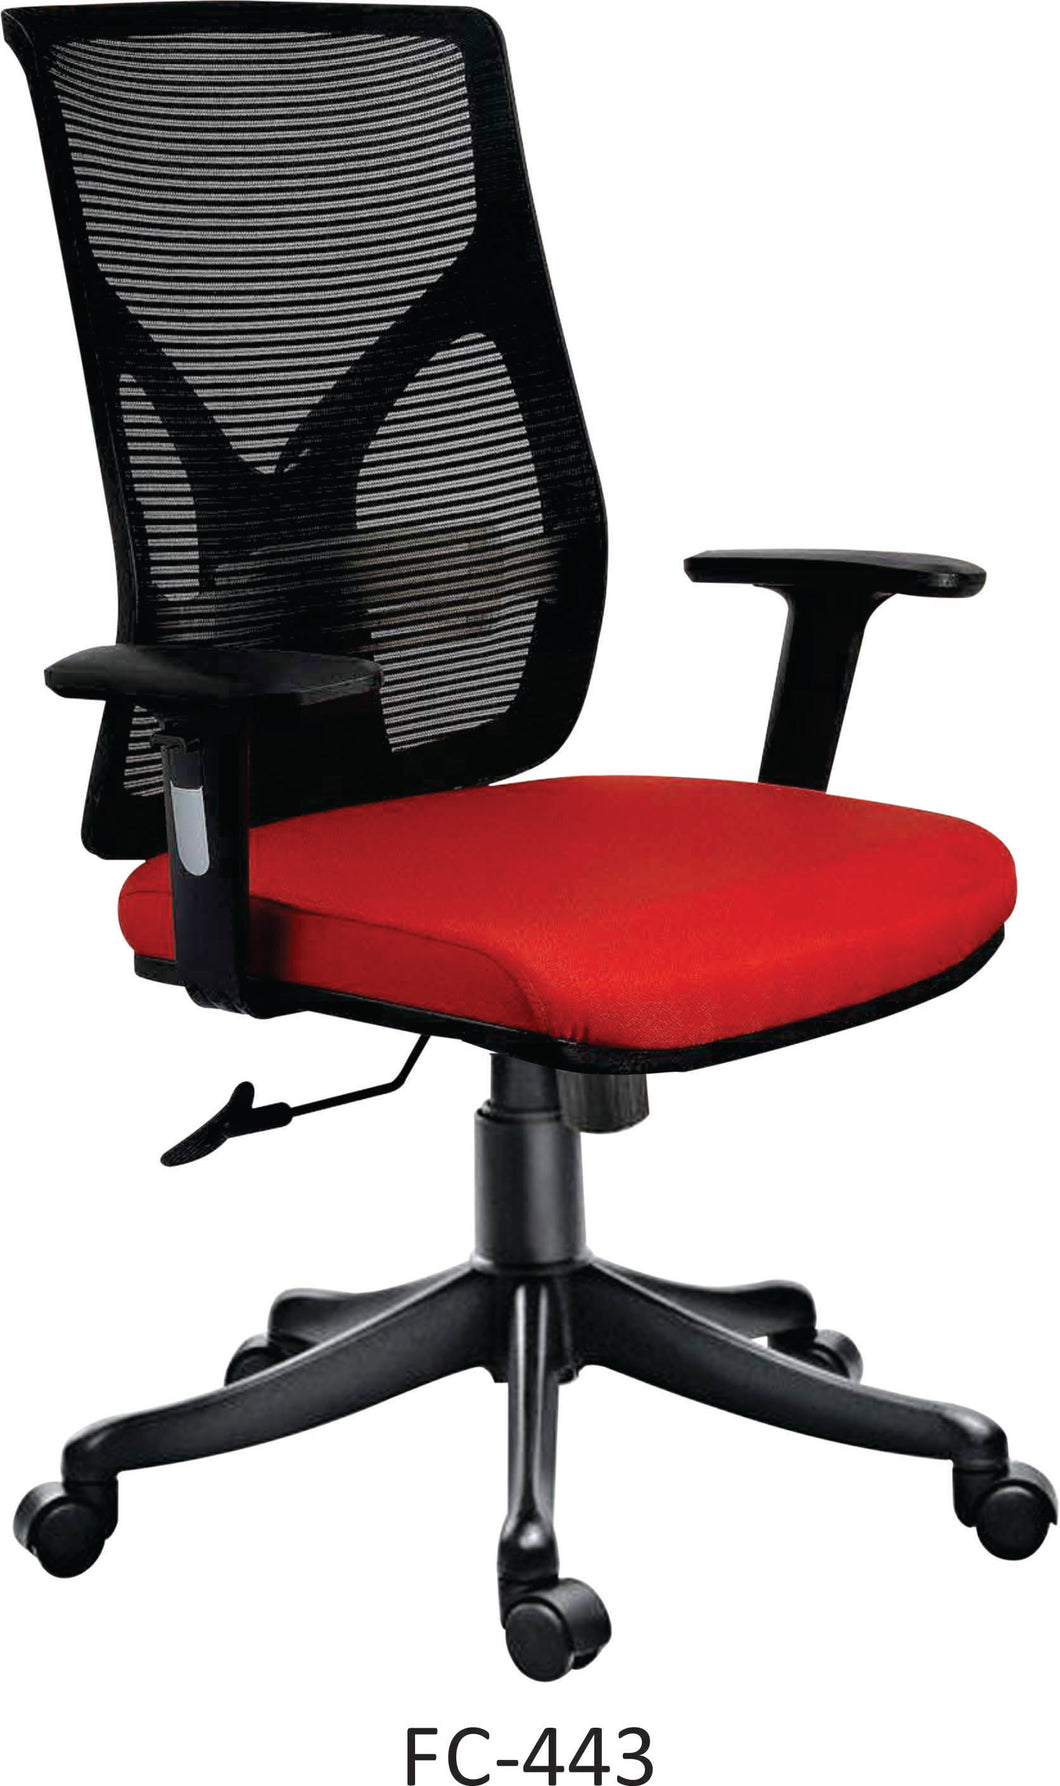 FC443- FALCON Medium Back Mesh Chair